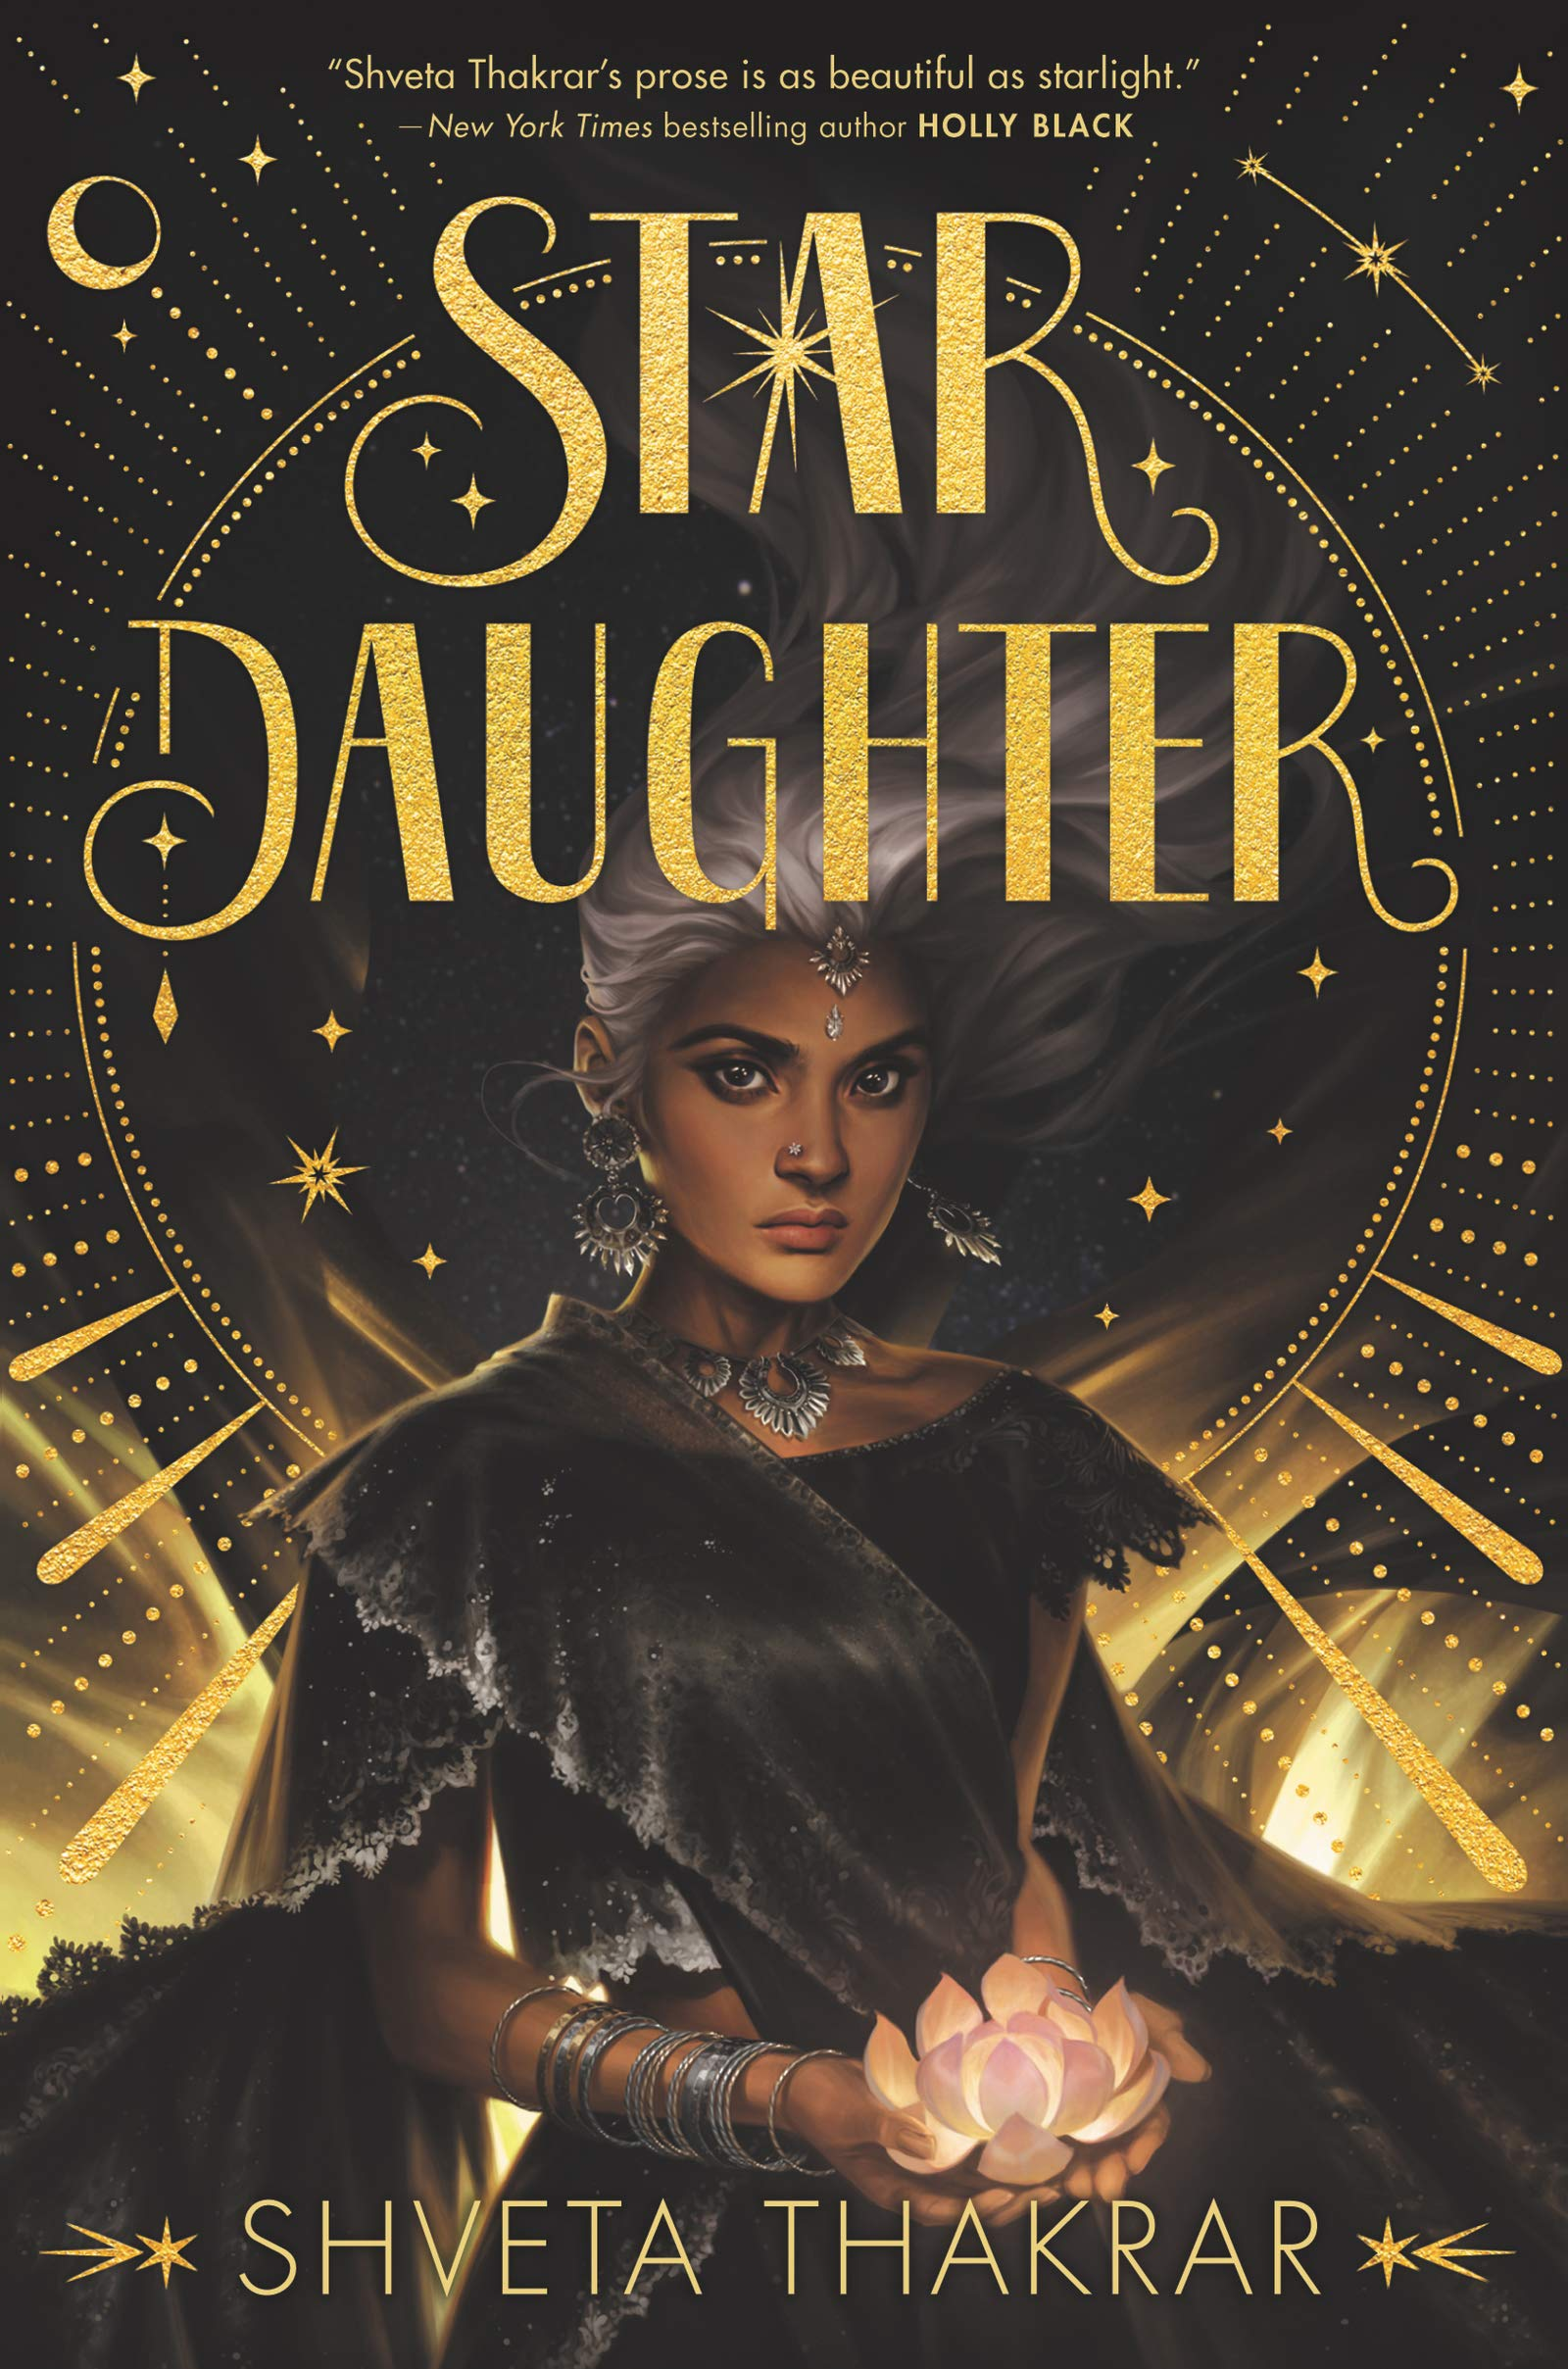 Amazon.com: Star Daughter (9780062894625): Thakrar, Shveta: Books